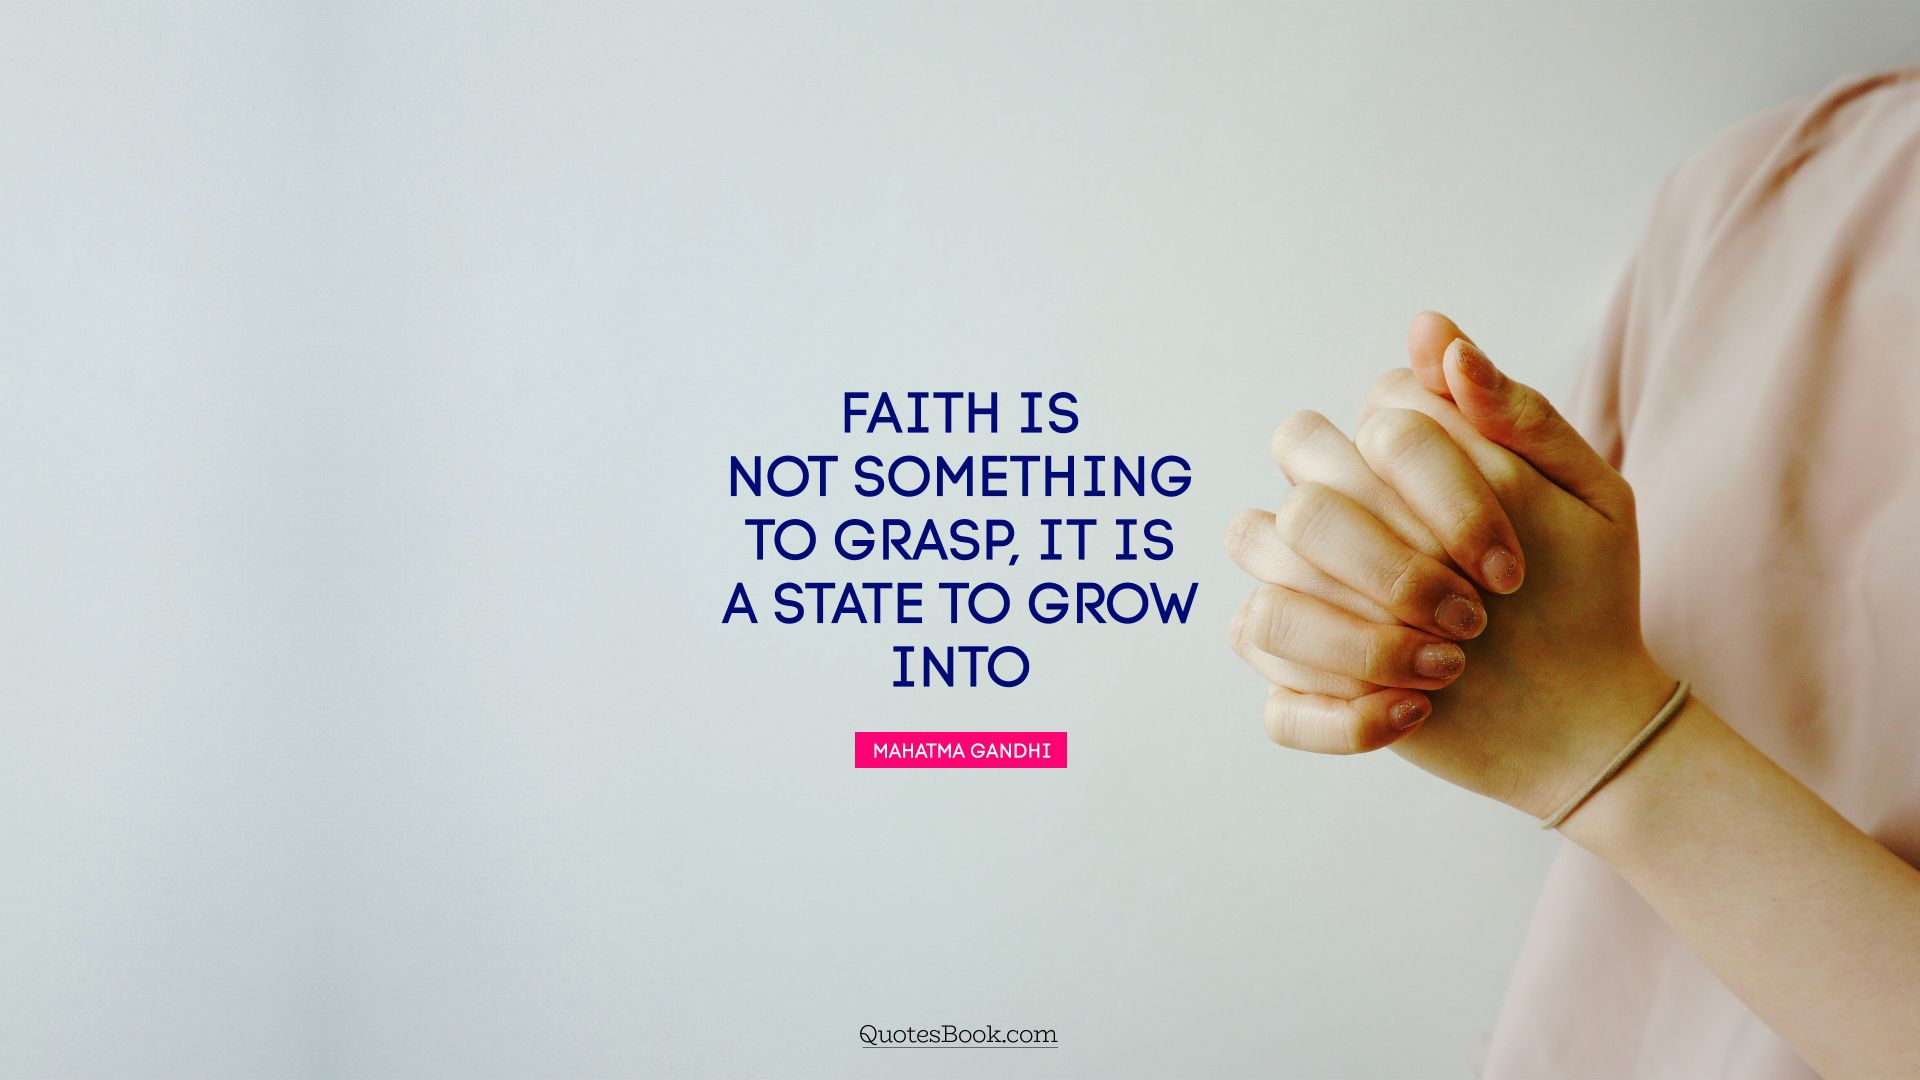 Faith is not something to grasp, it is a state to grow into. - Quote by Mahatma Gandhi